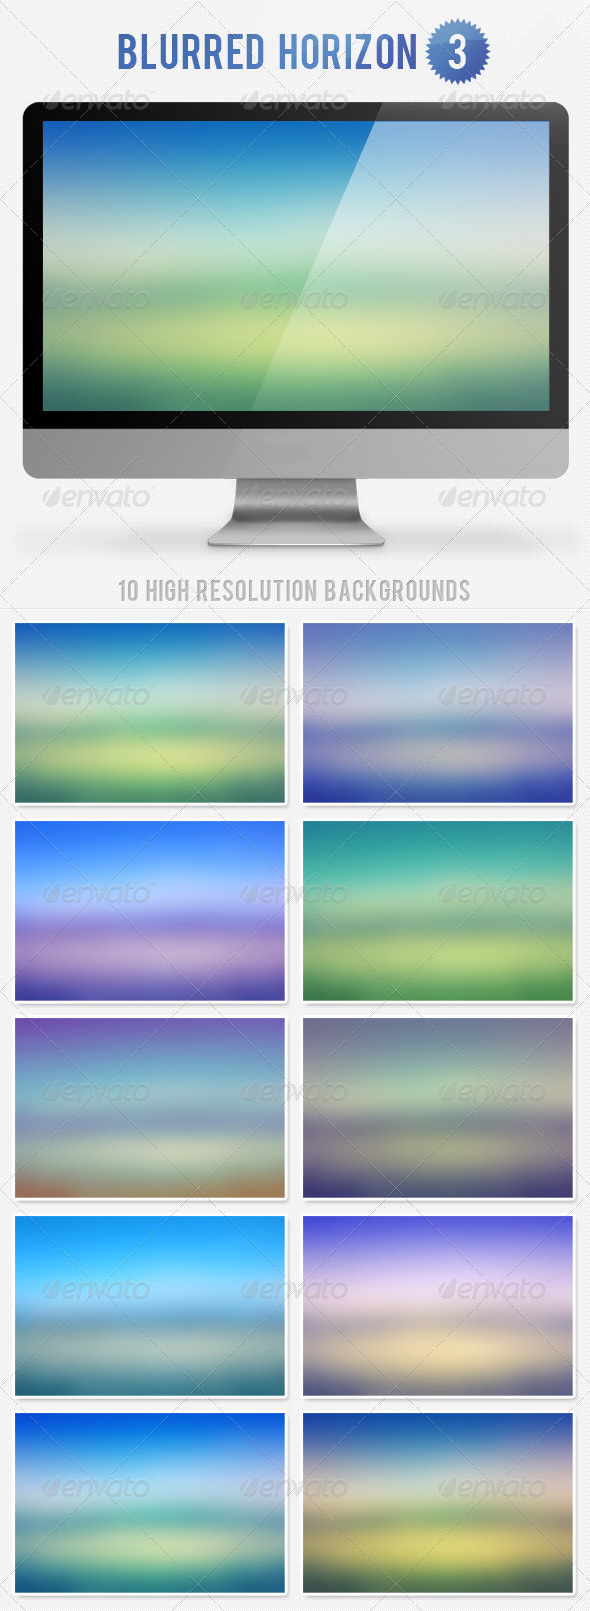 Blurred Horizon Background 3 - Nature Backgrounds